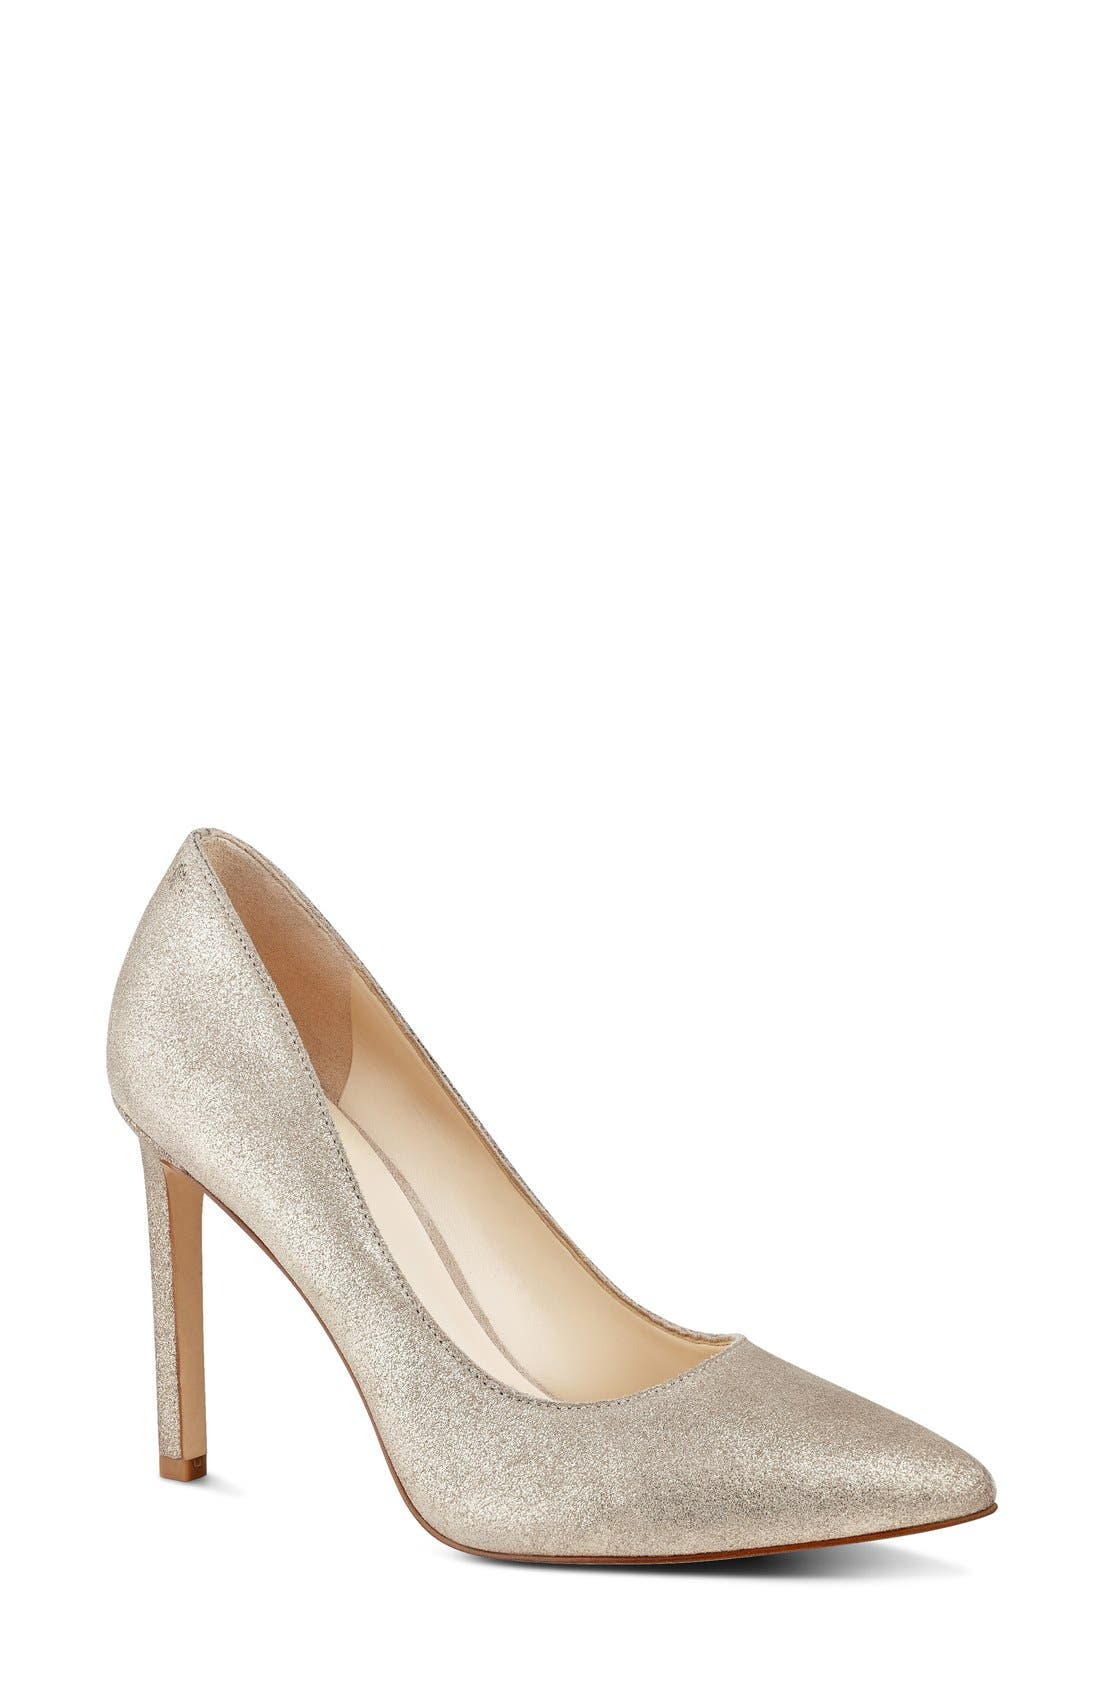 'Tatiana' Pump,                             Main thumbnail 1, color,                             Natural/ Gold Metallic Suede